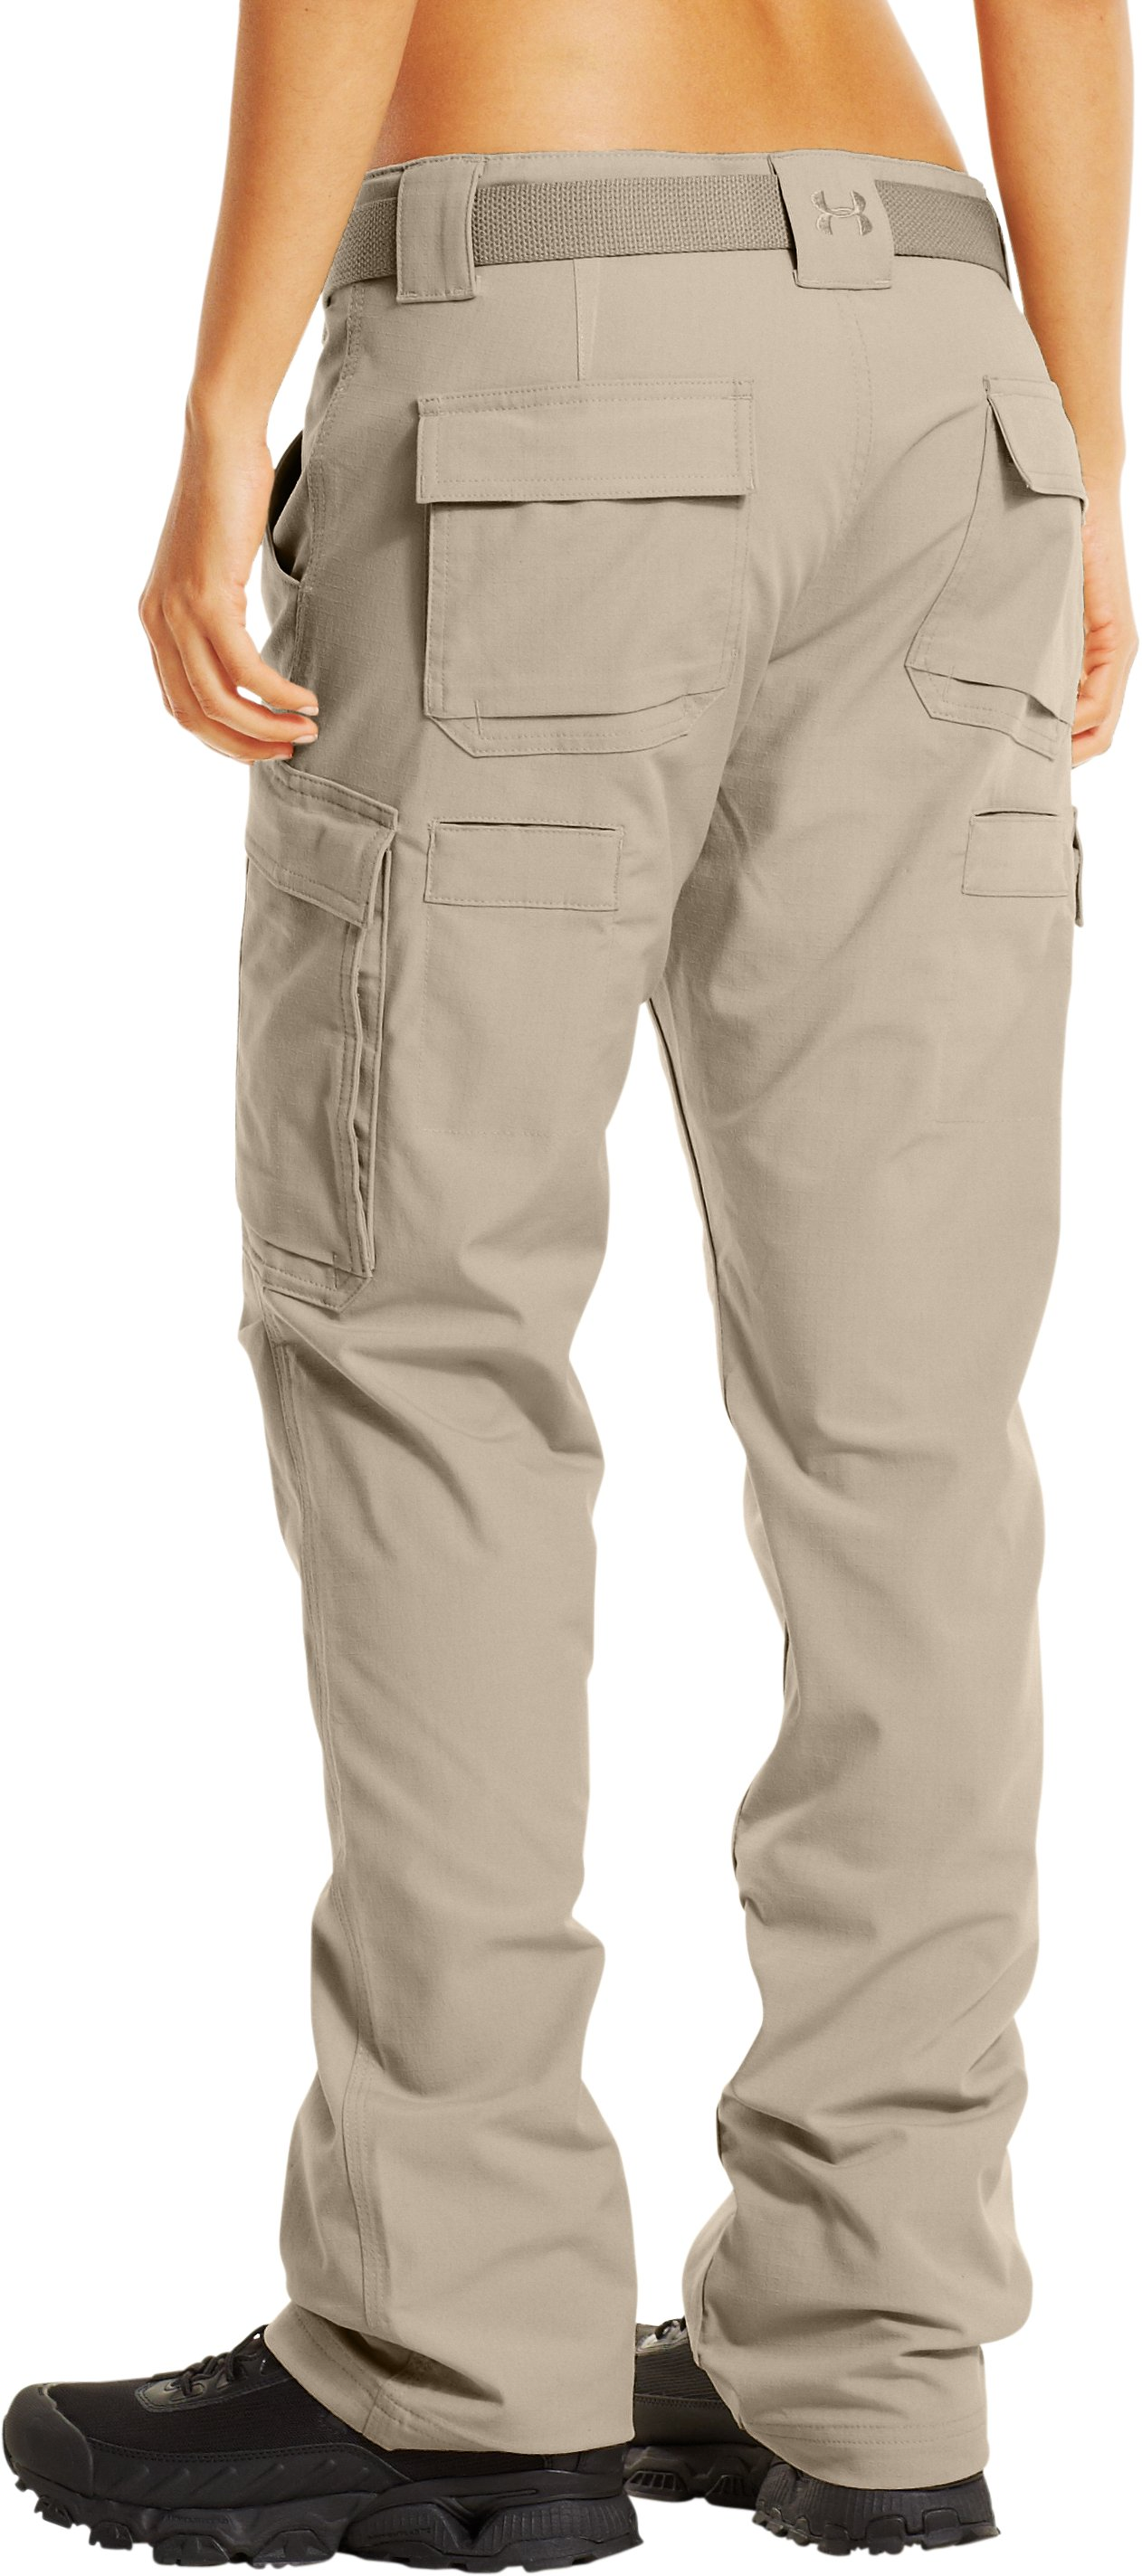 Women's Tactical Duty Pants, Desert Sand